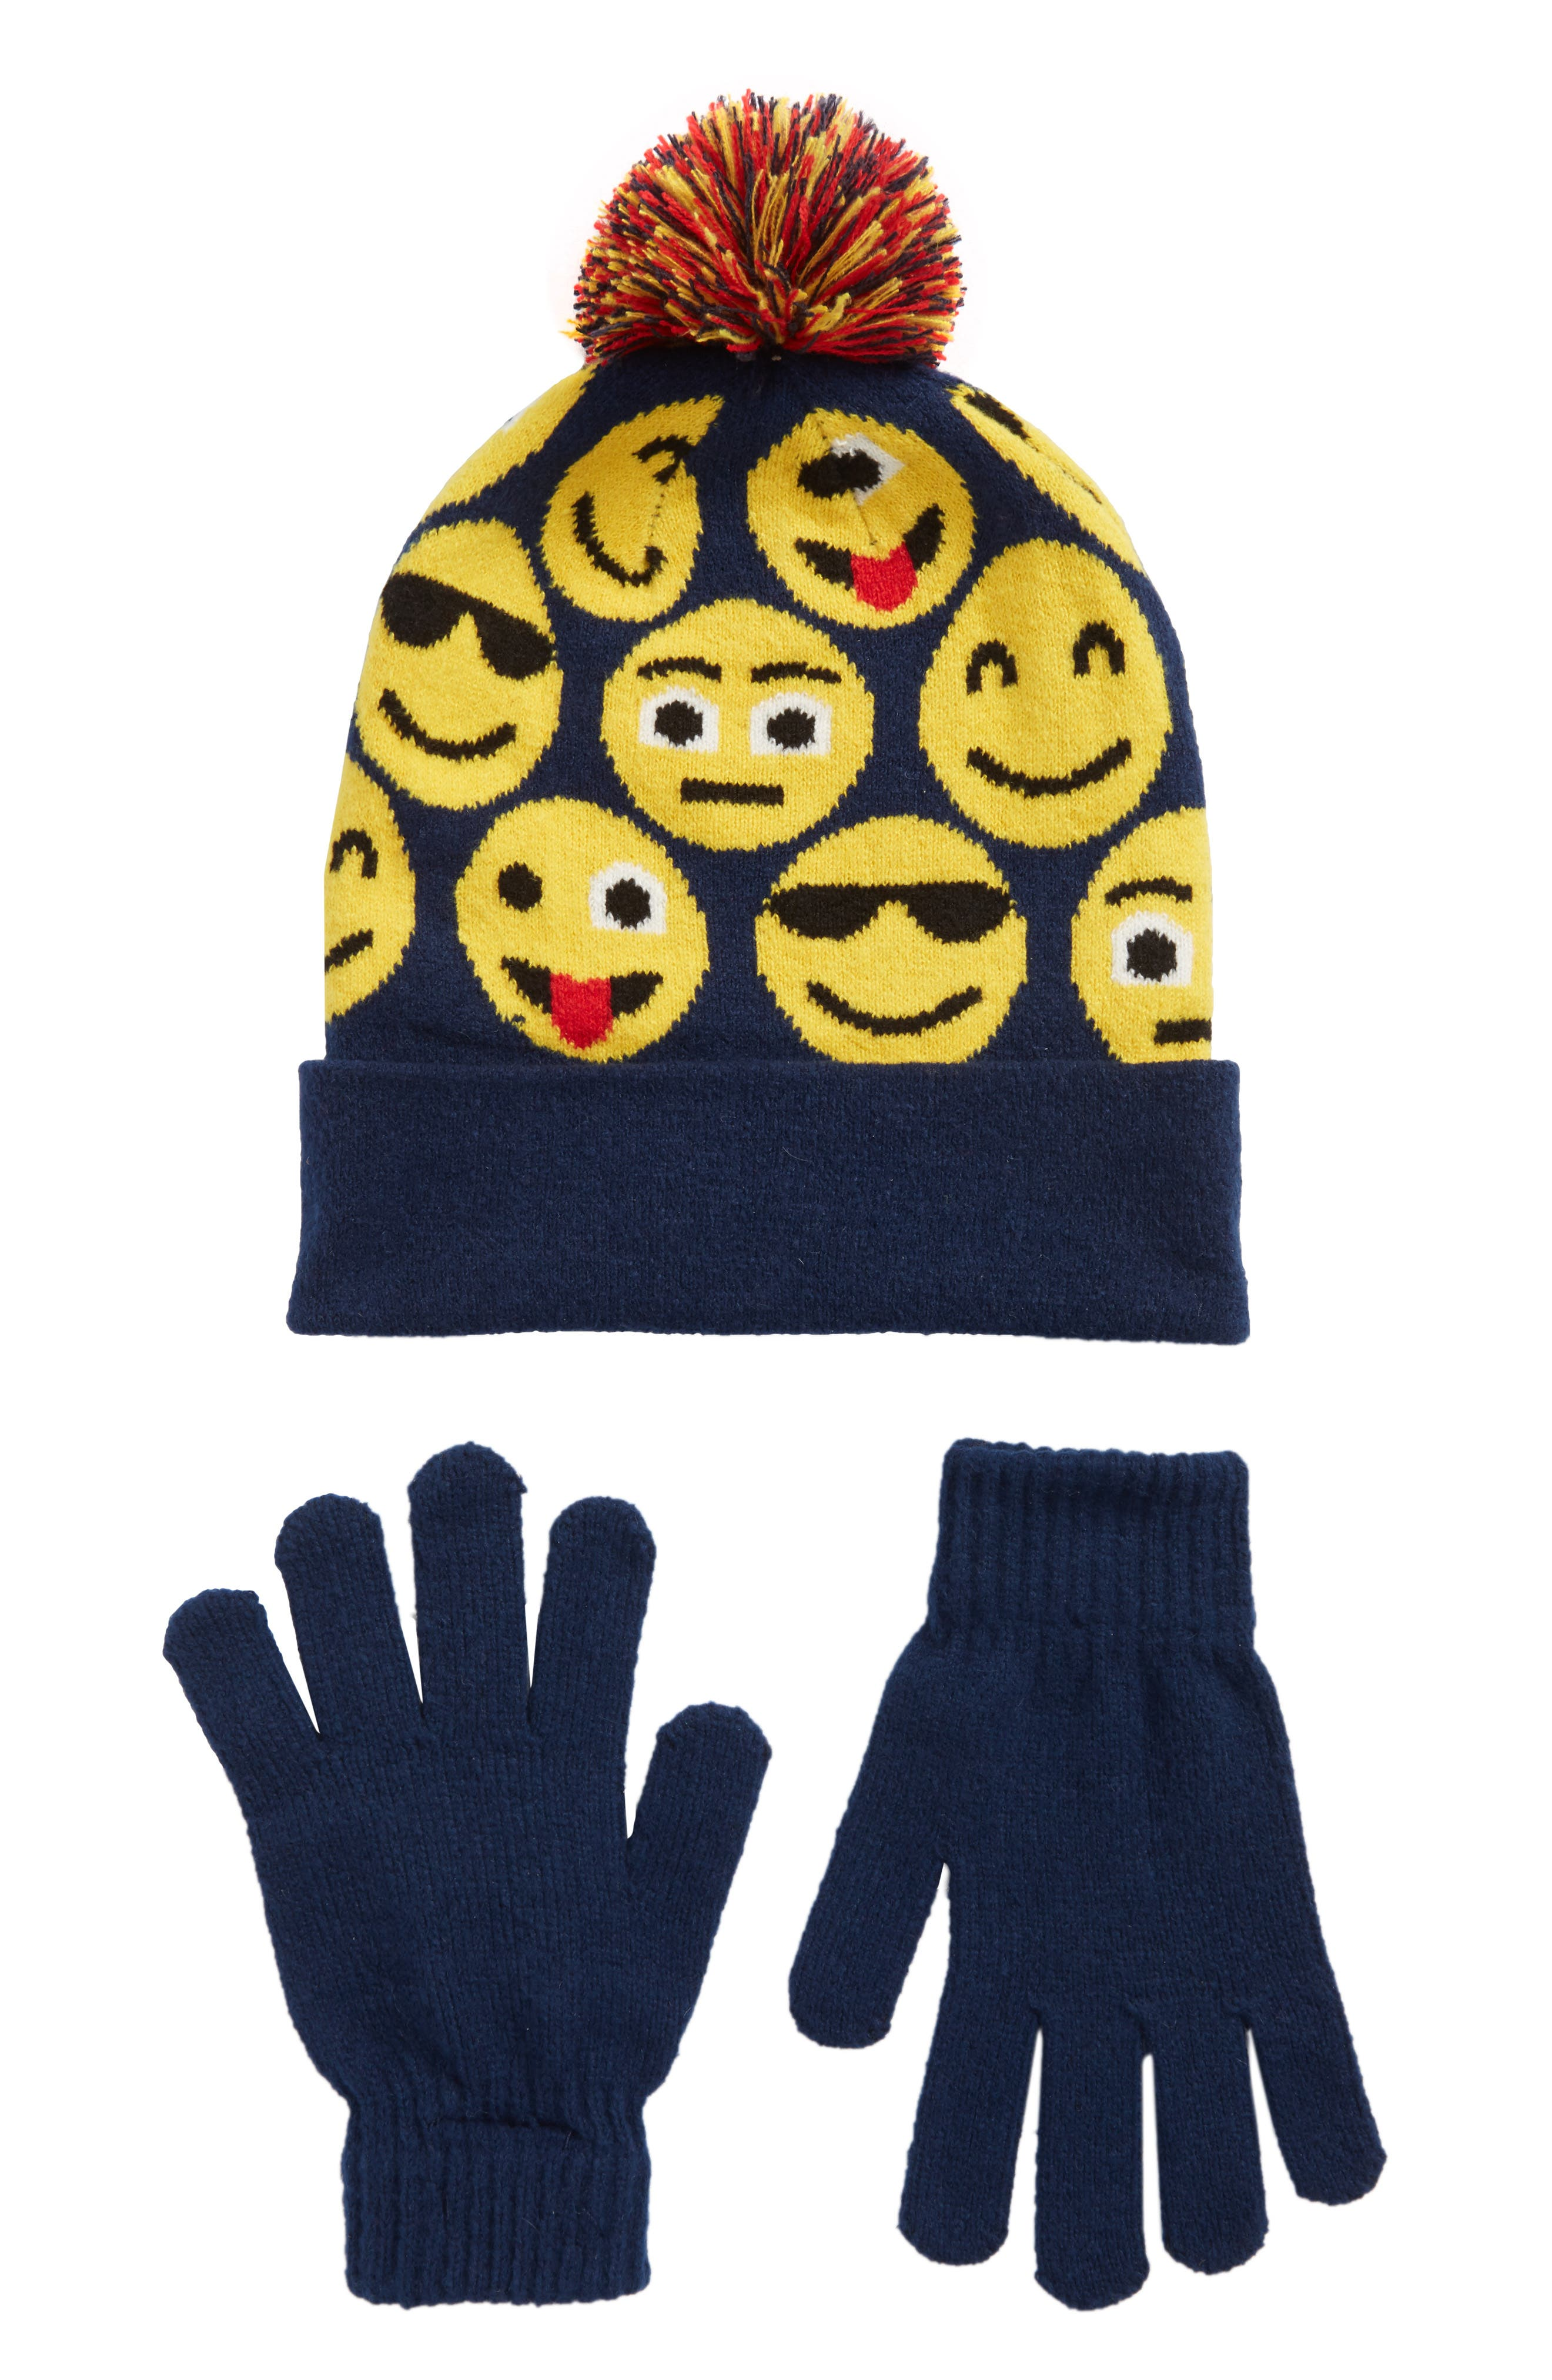 Capelli of New York Emoji Hat & Gloves Set,                         Main,                         color, Navy Combo